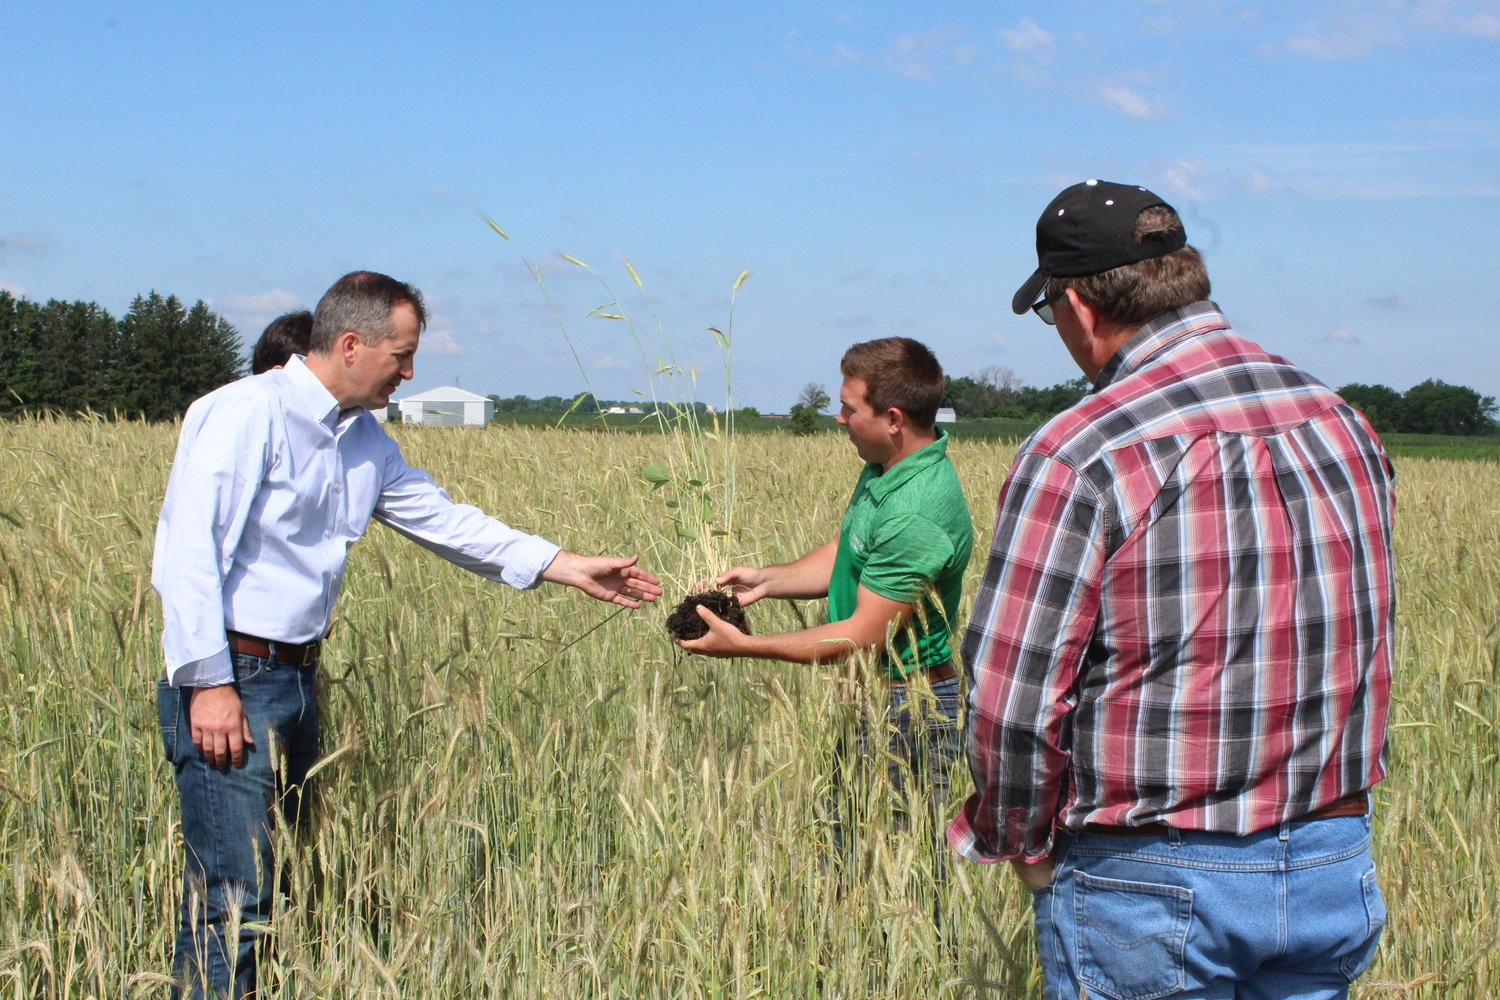 Continuum Ag CEO Mitchell Hora shows off a 'relay crop' of cereal rye and soy growing in the same soil to state officials at a tour in late June. From left, Iowa Secretary of Agriculture Mike Naig, Hora, and State Sen. Kevin Kinney.